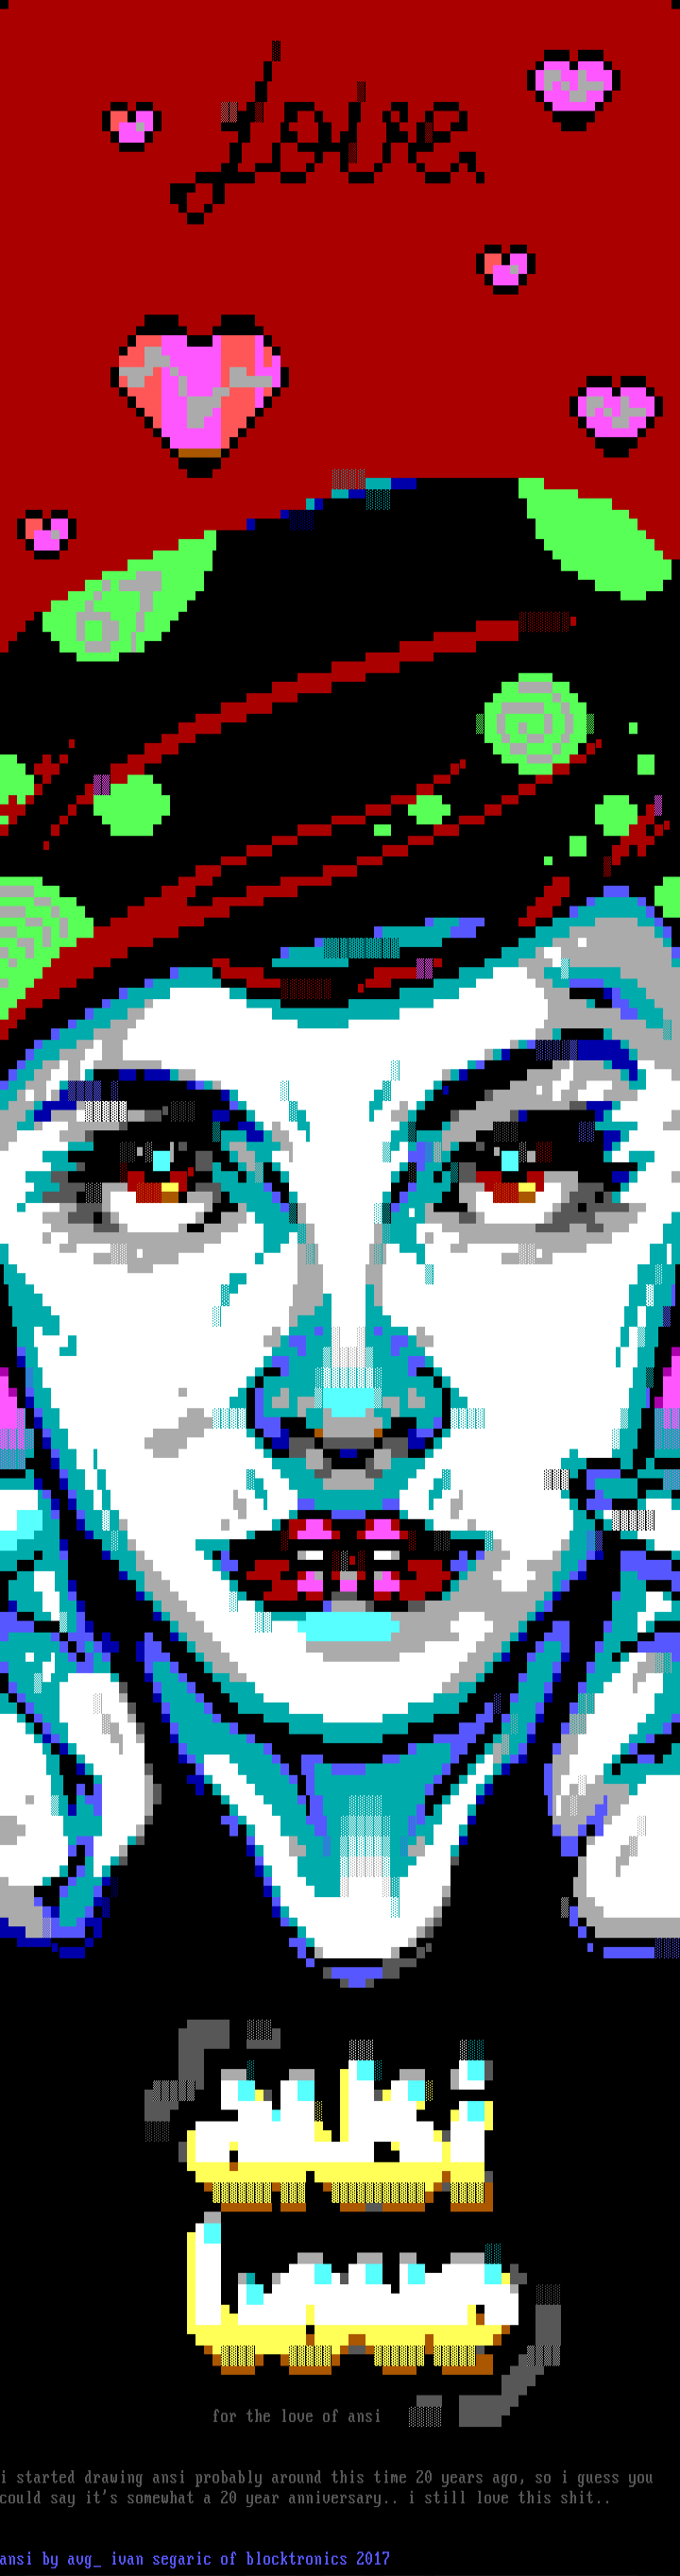 woman, red, love, cyan, white, blue, eye, eyes, hand, hands, yellow, ansi love, ansi, ansilove, font, heart